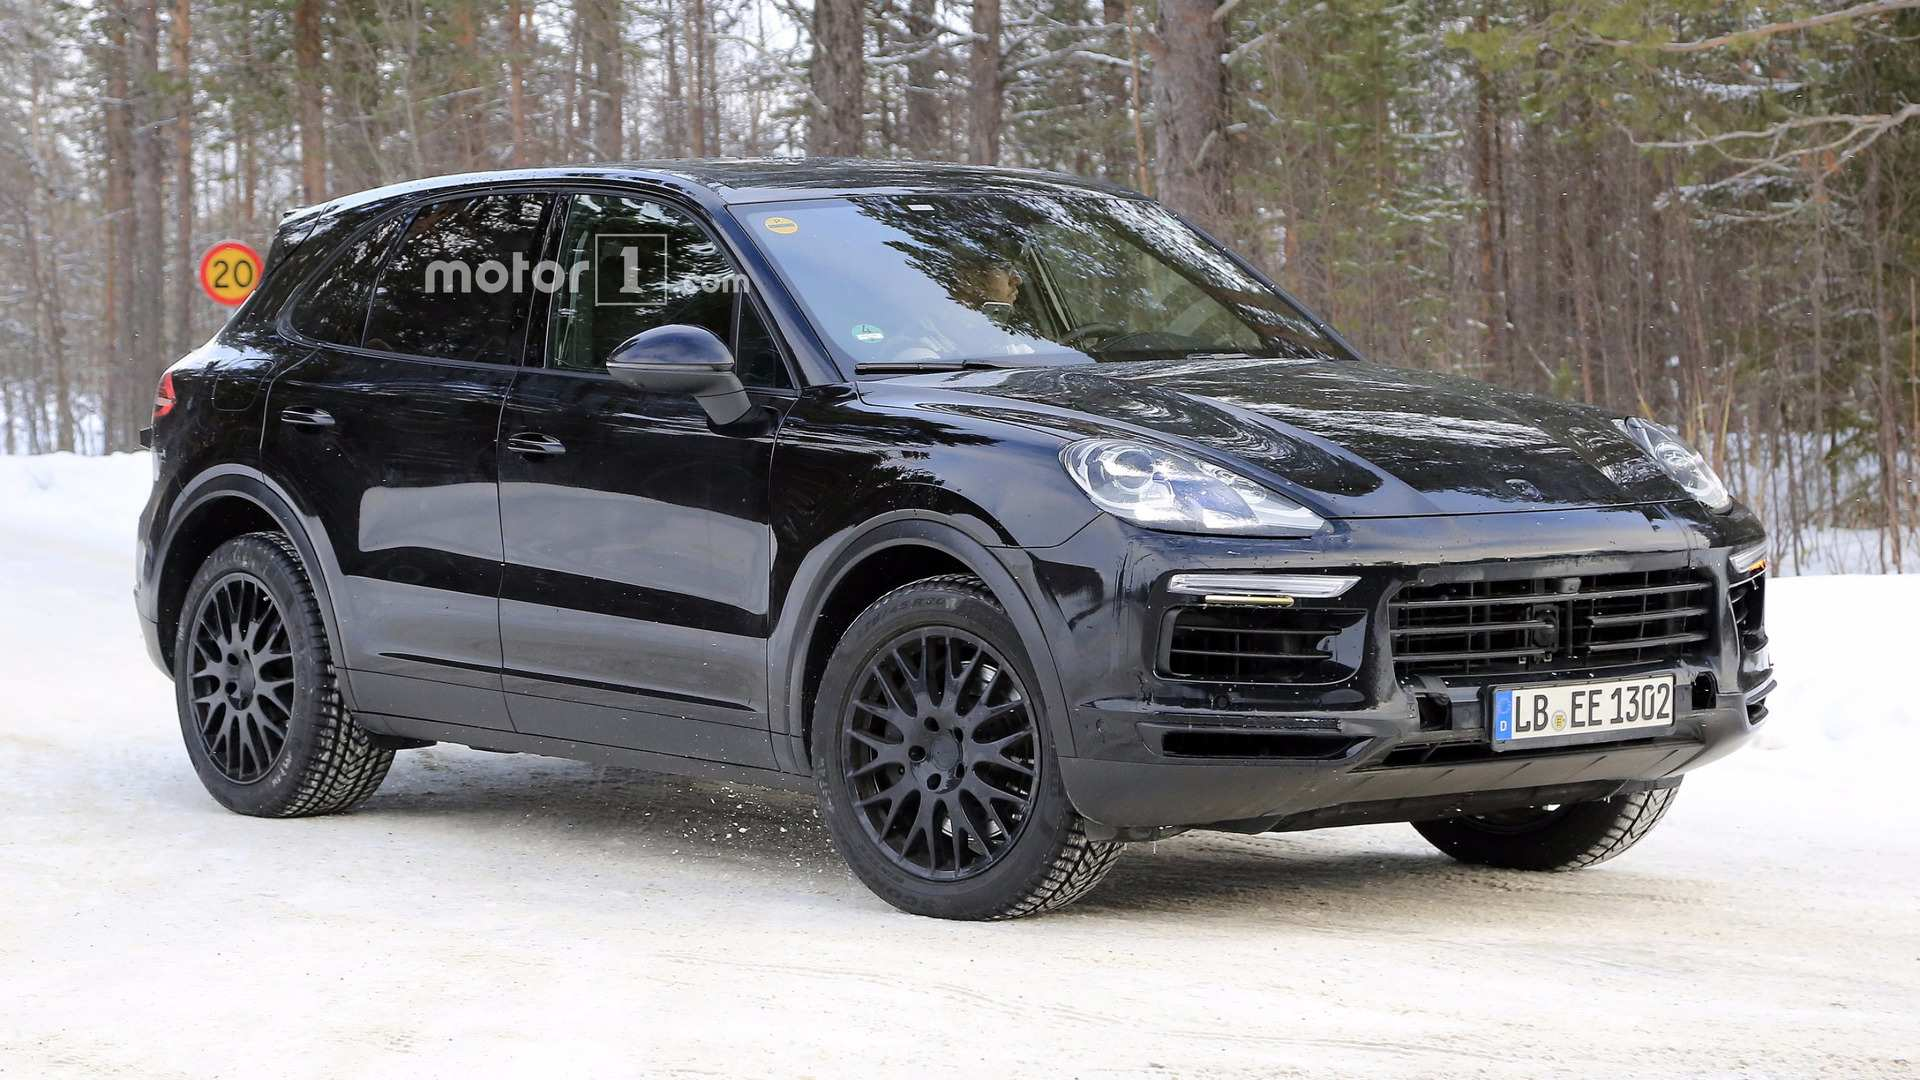 30 All New 2020 Porsche Cayenne Turbo S Redesign